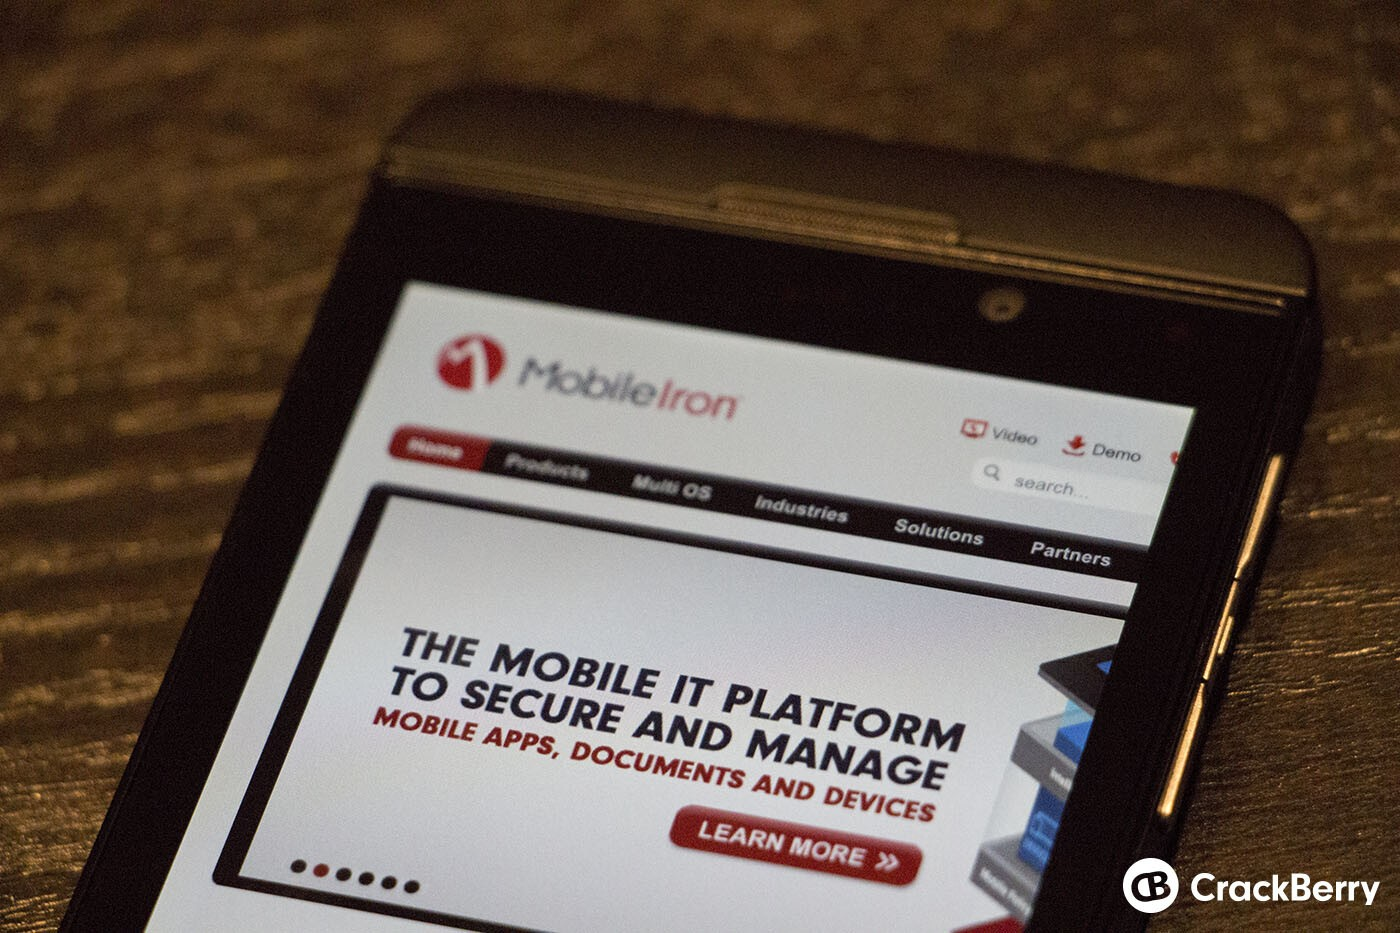 MobileIron announces support for BlackBerry 10 smartphones